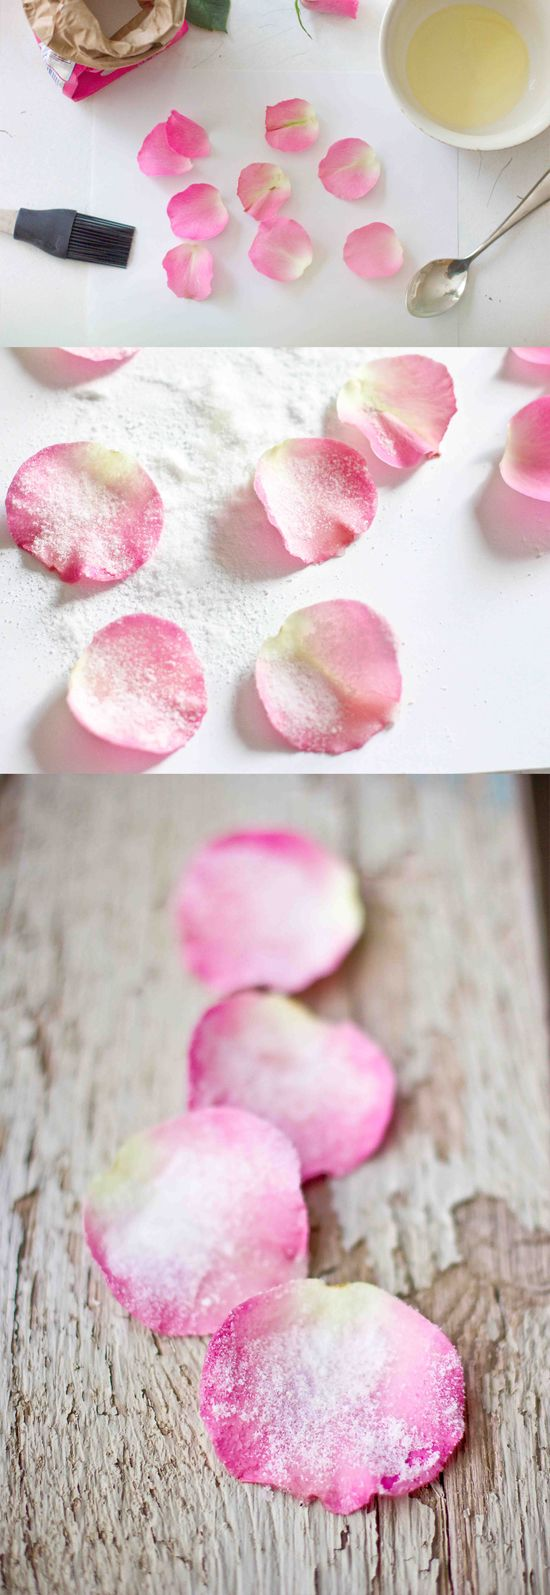 Edible candied rose petals- so easy and elegant!